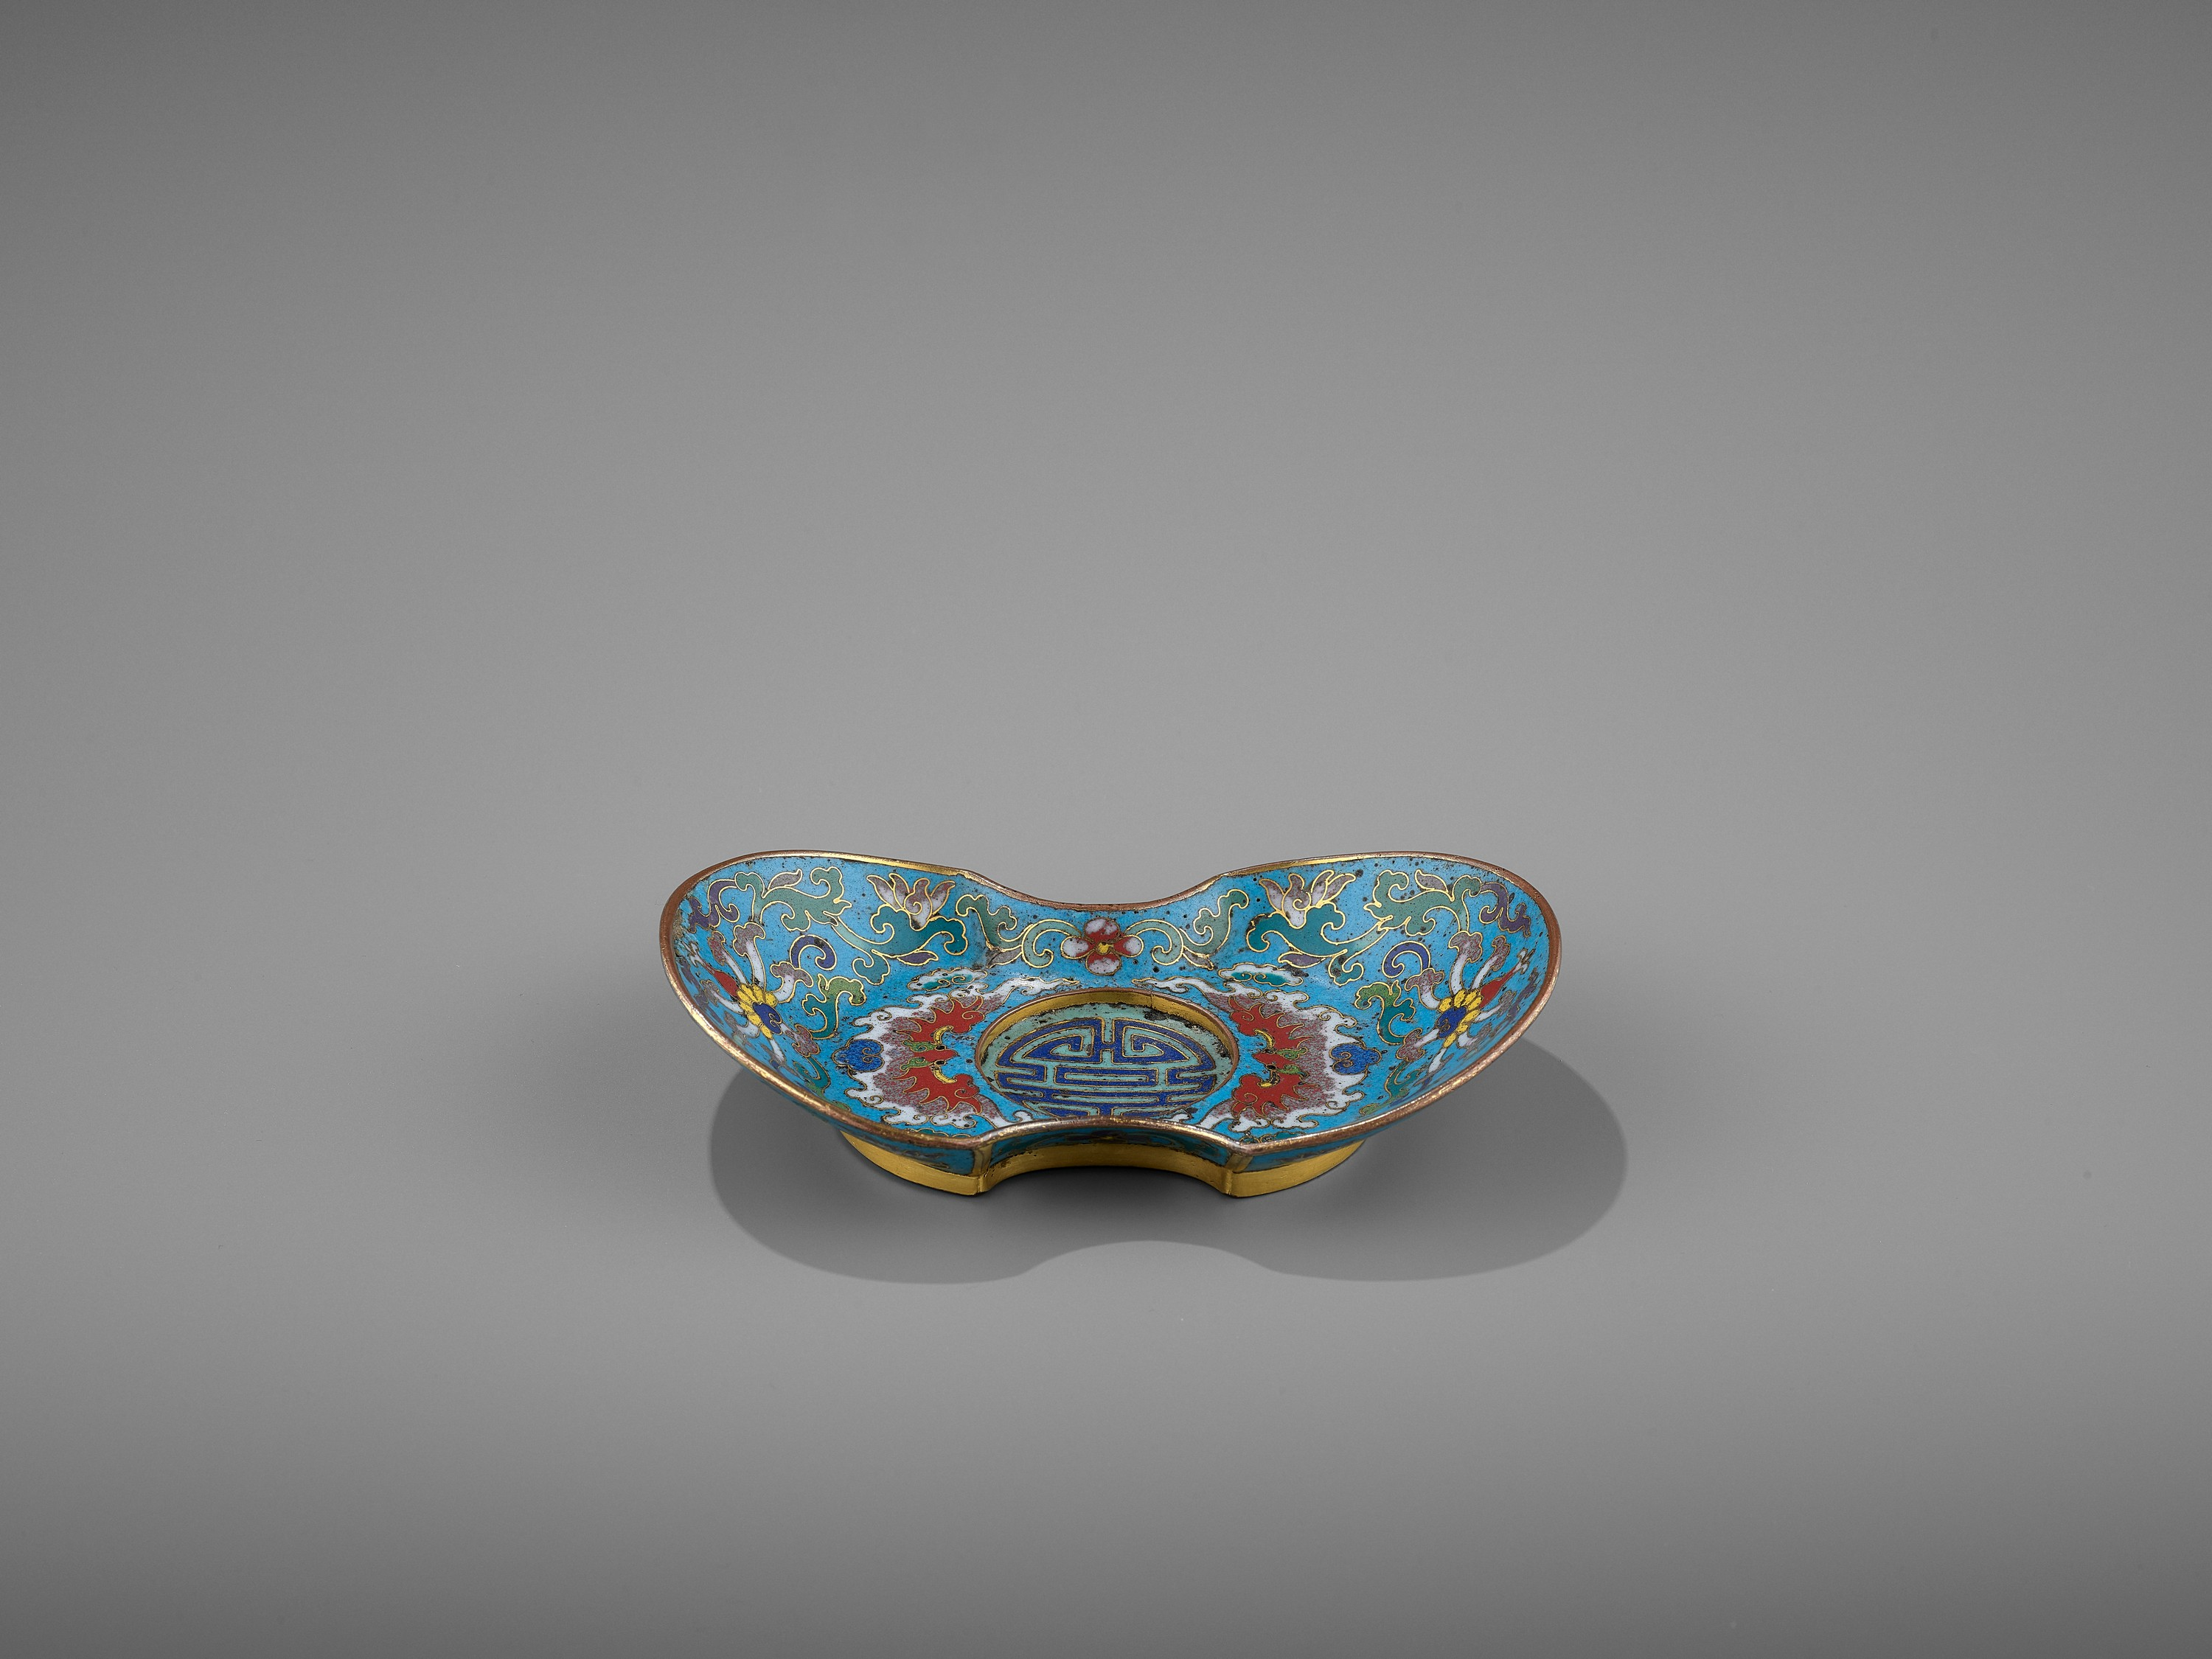 A CLOISONNE AND GILT-BRONZE 'DOUBLE HAPPINESS' CUP STAND, QIANLONG - Image 8 of 10